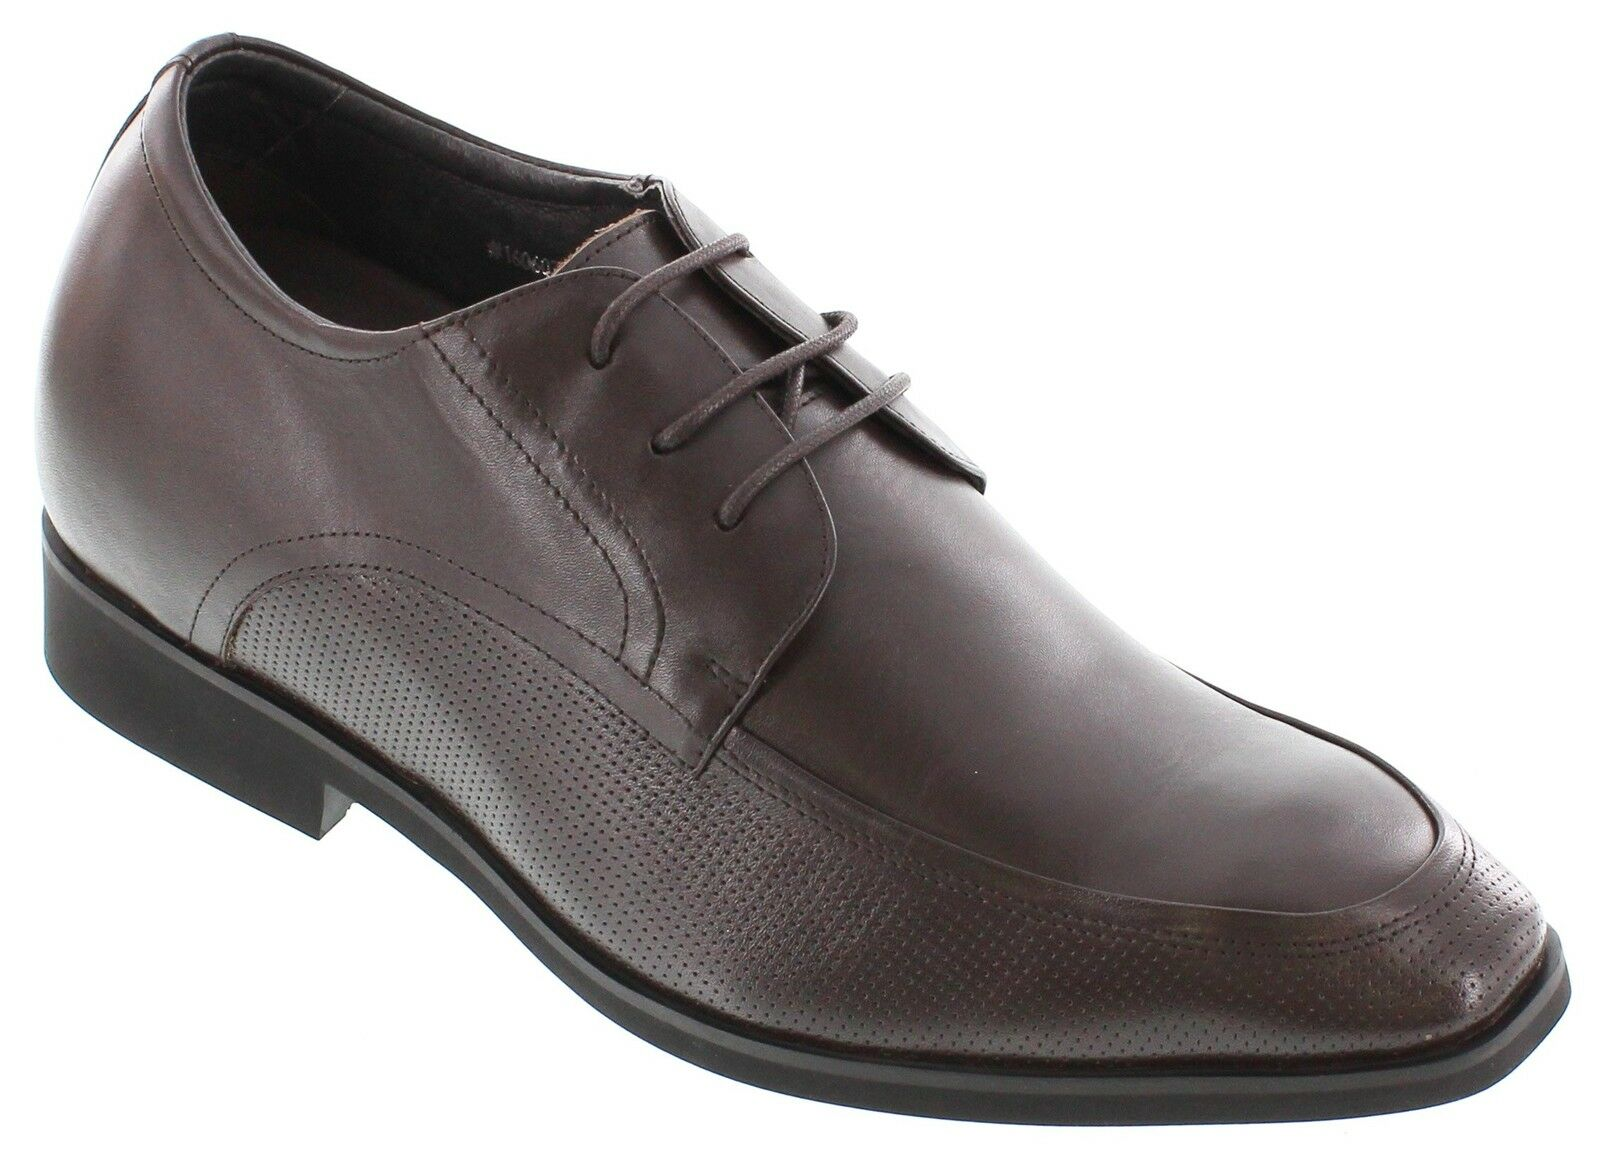 TOTO D09102 - 2.8 Inches Elevator Height Increase Dark Brown Dress Oxfords